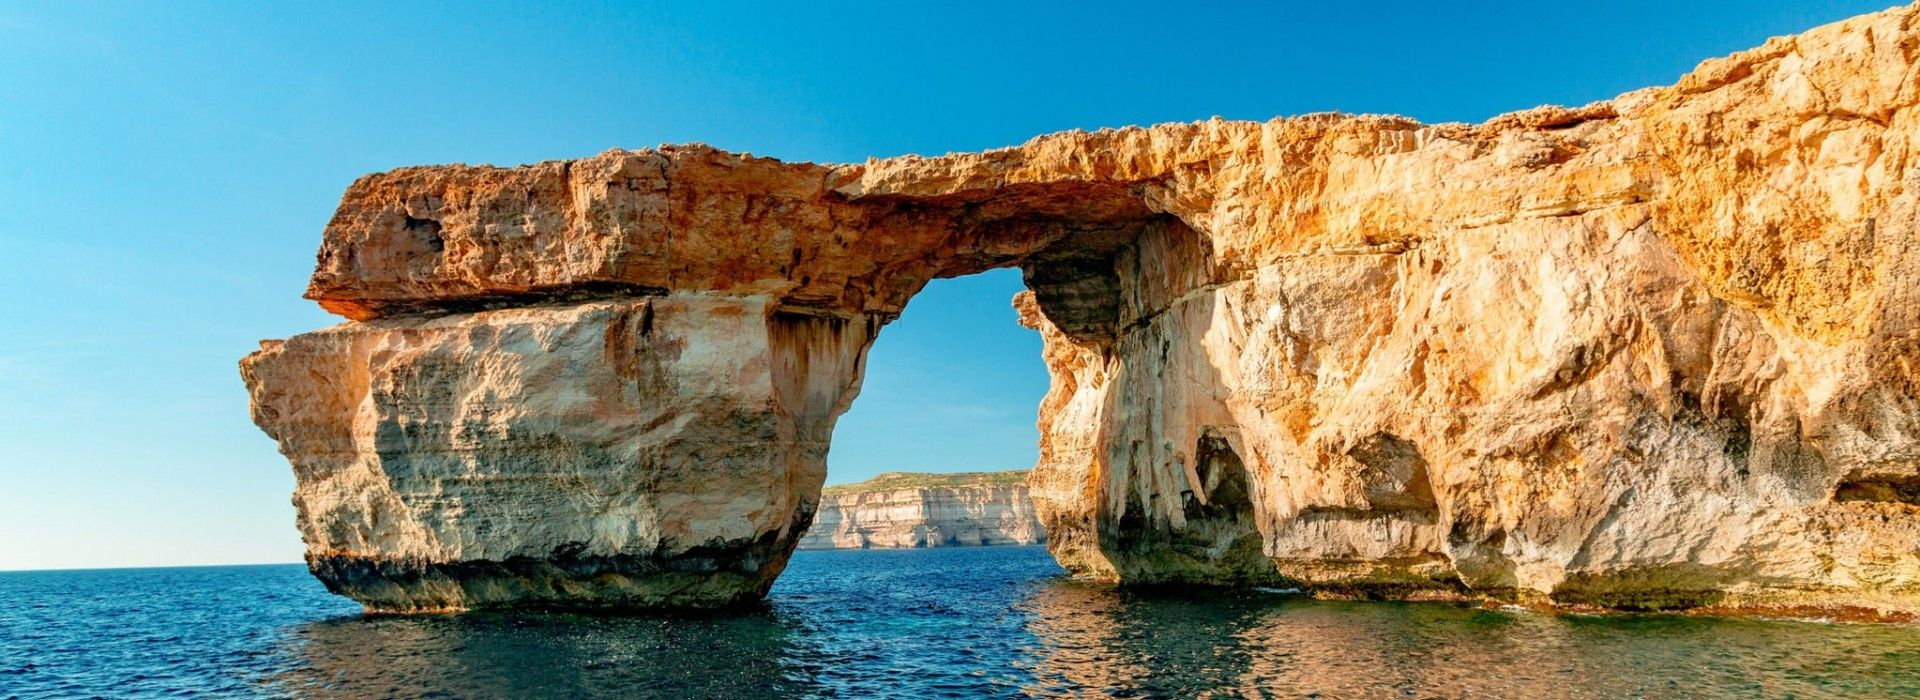 A trip to Gozo is an invitation to play in its sandy beaches